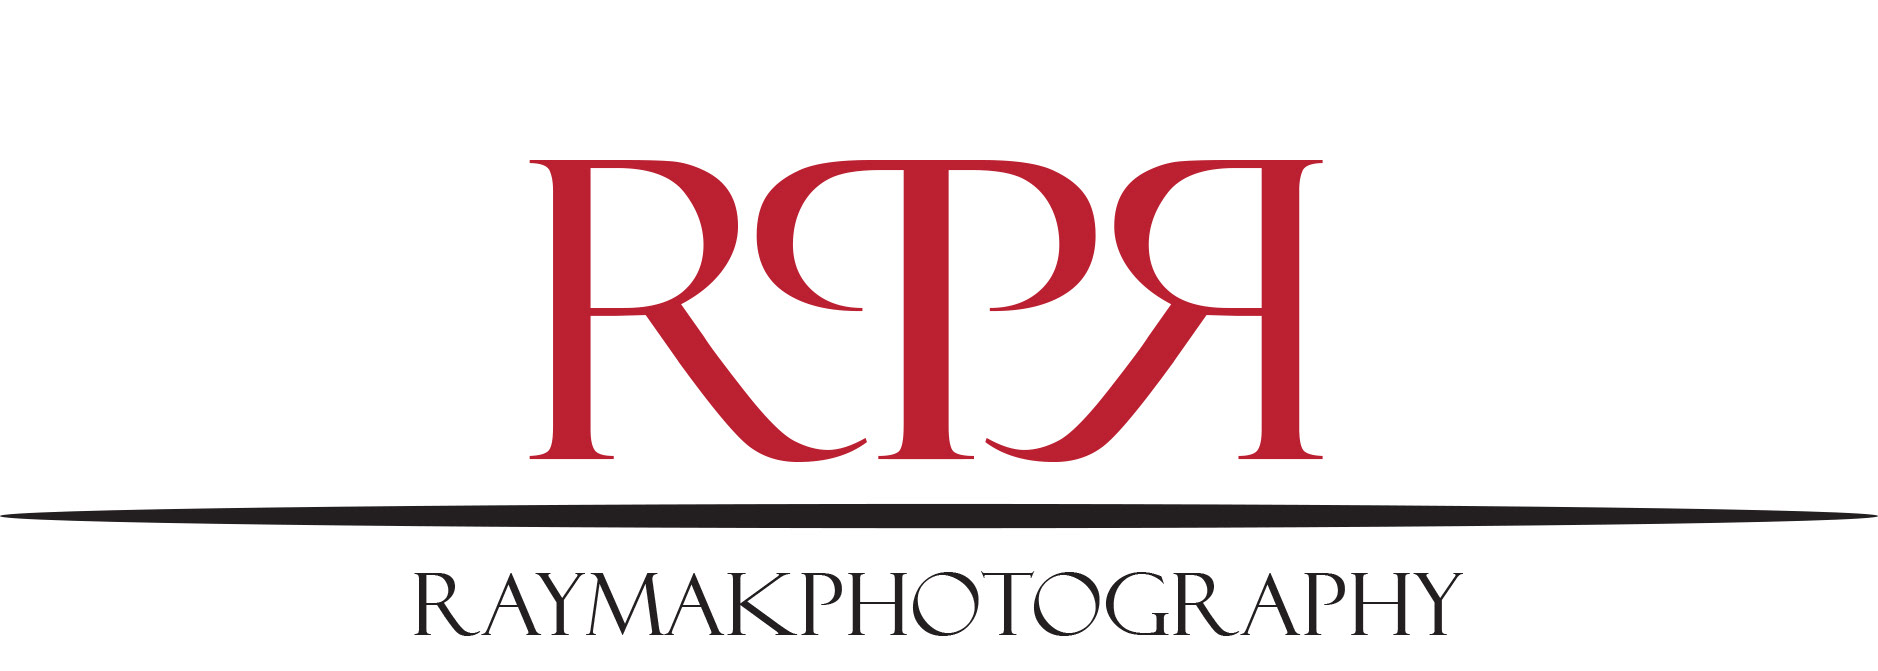 RaymakPhotography